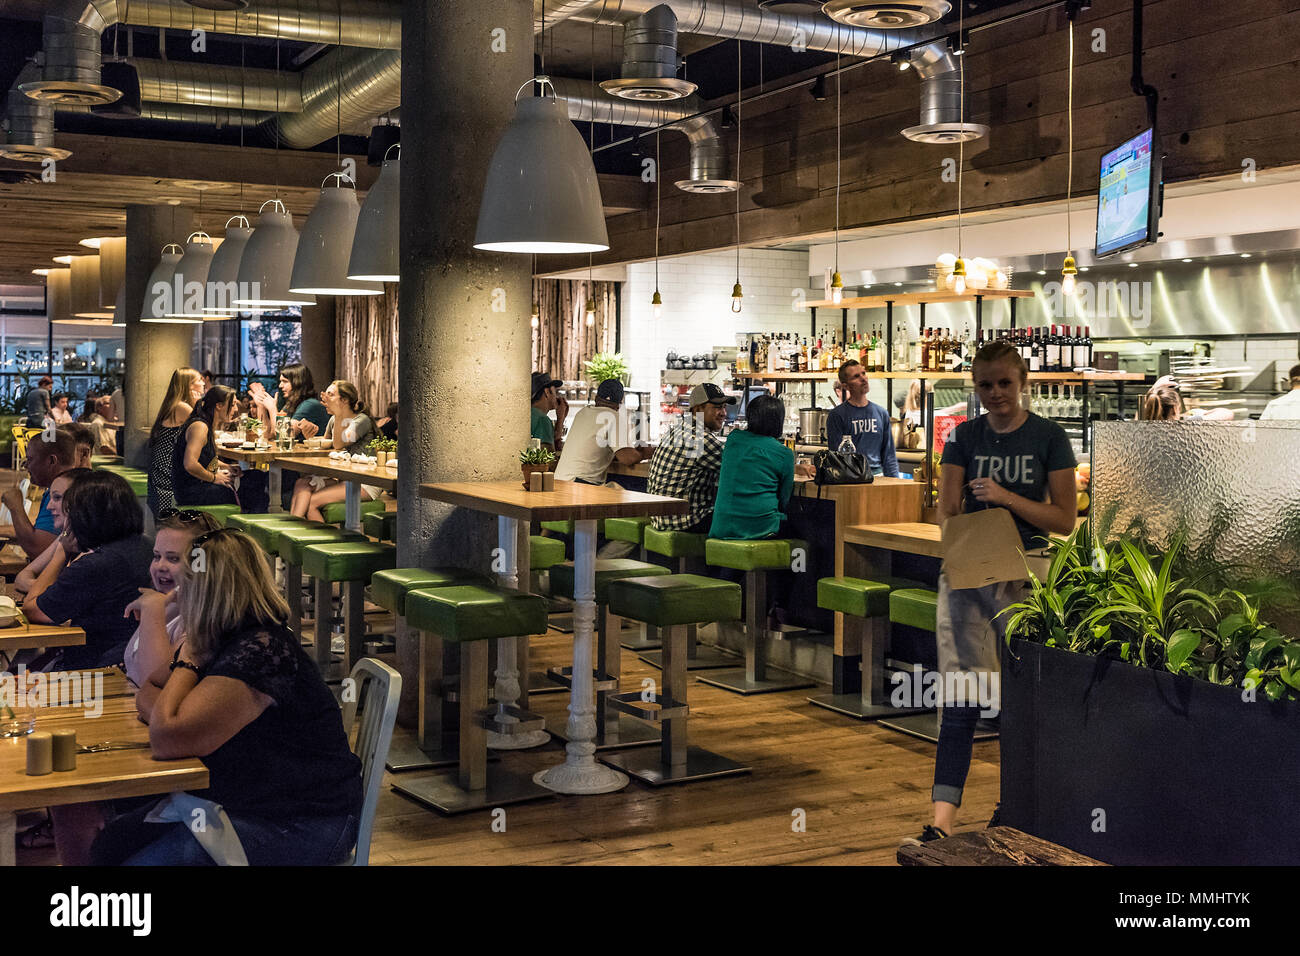 True Food Kitchen restaurant, Denver Colorado, USA. - Stock Image